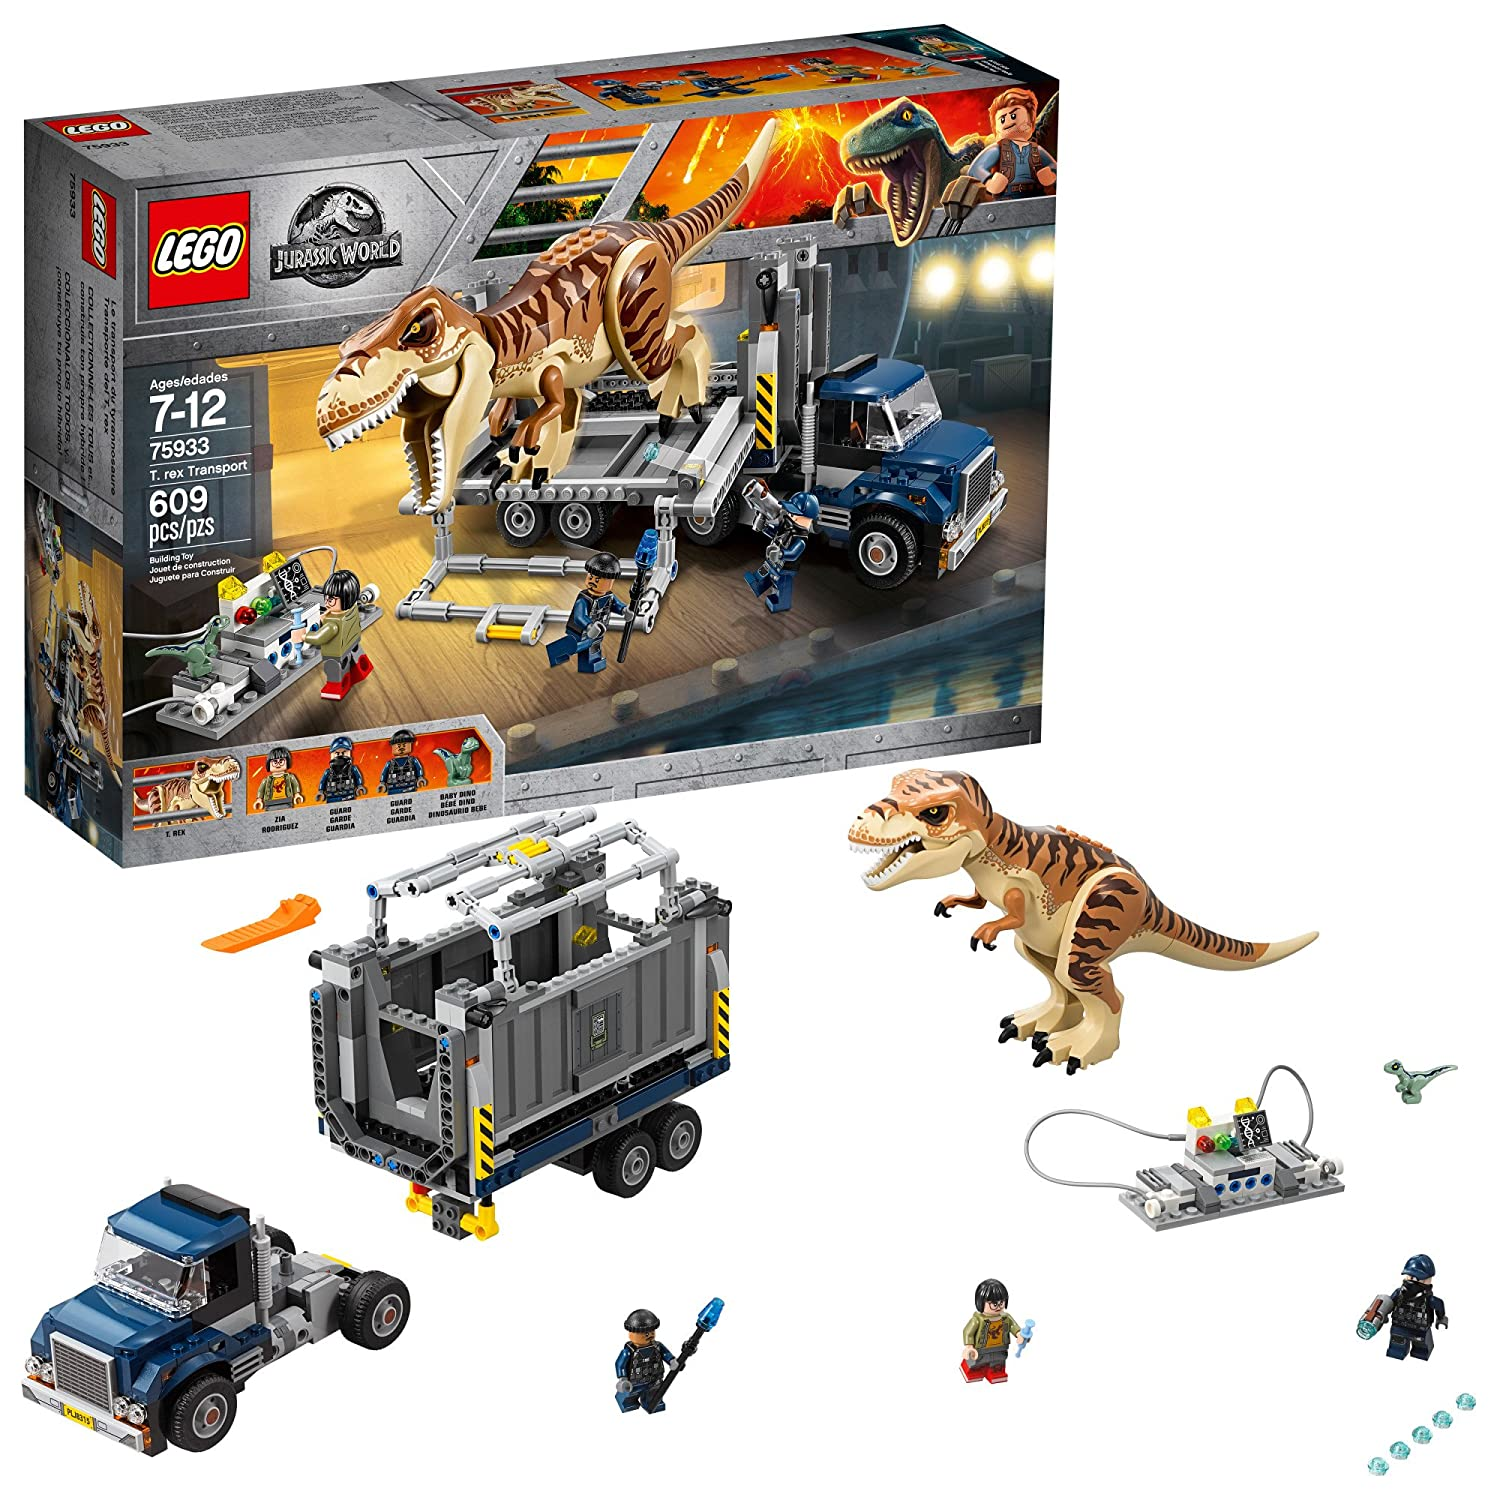 Top 9 Best Lego Jurassic Park Sets Reviews in 2021 10